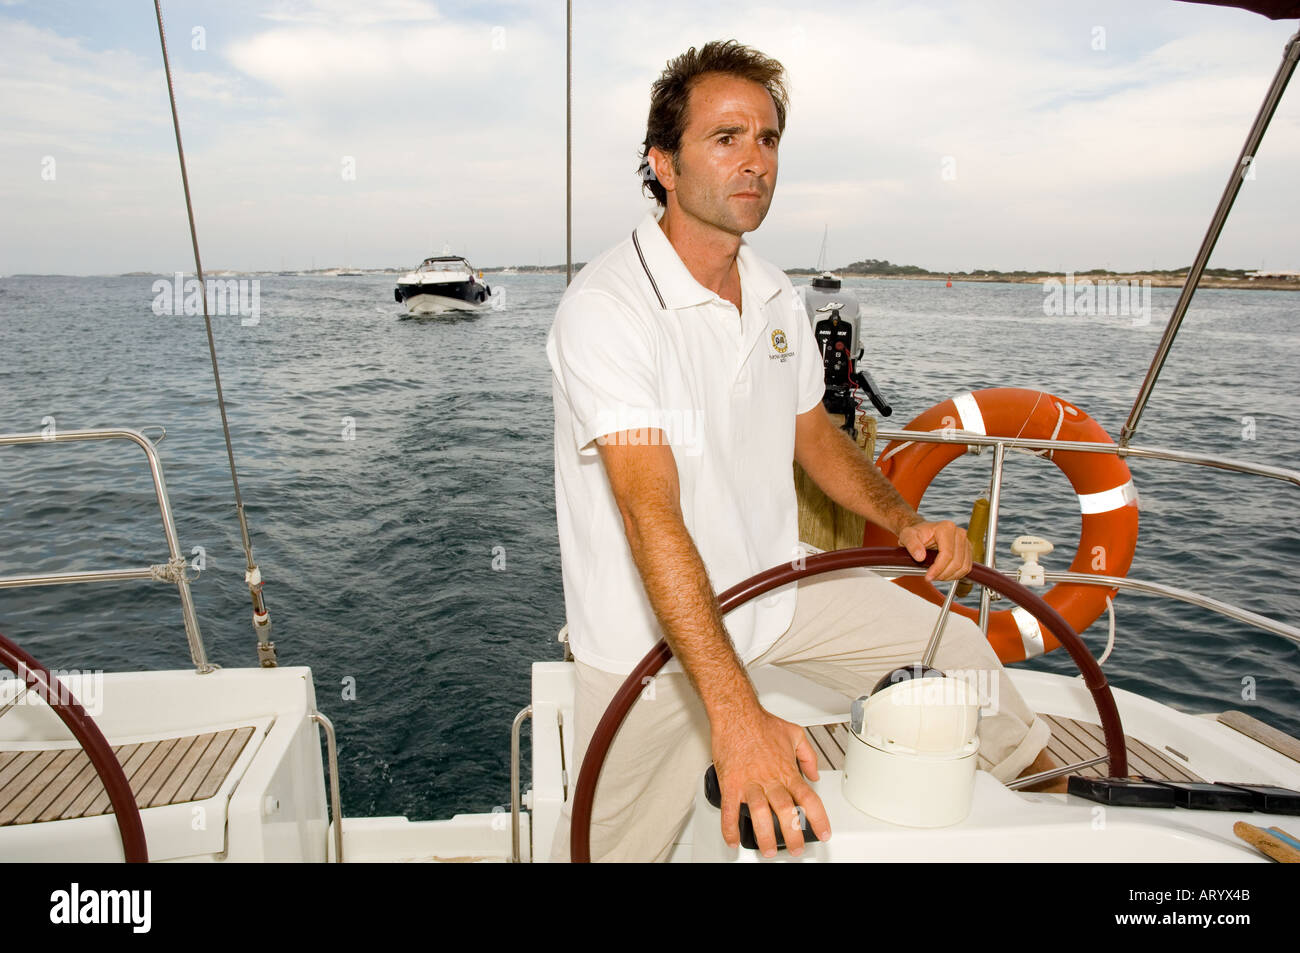 Man posing as a sea captain - Stock Image